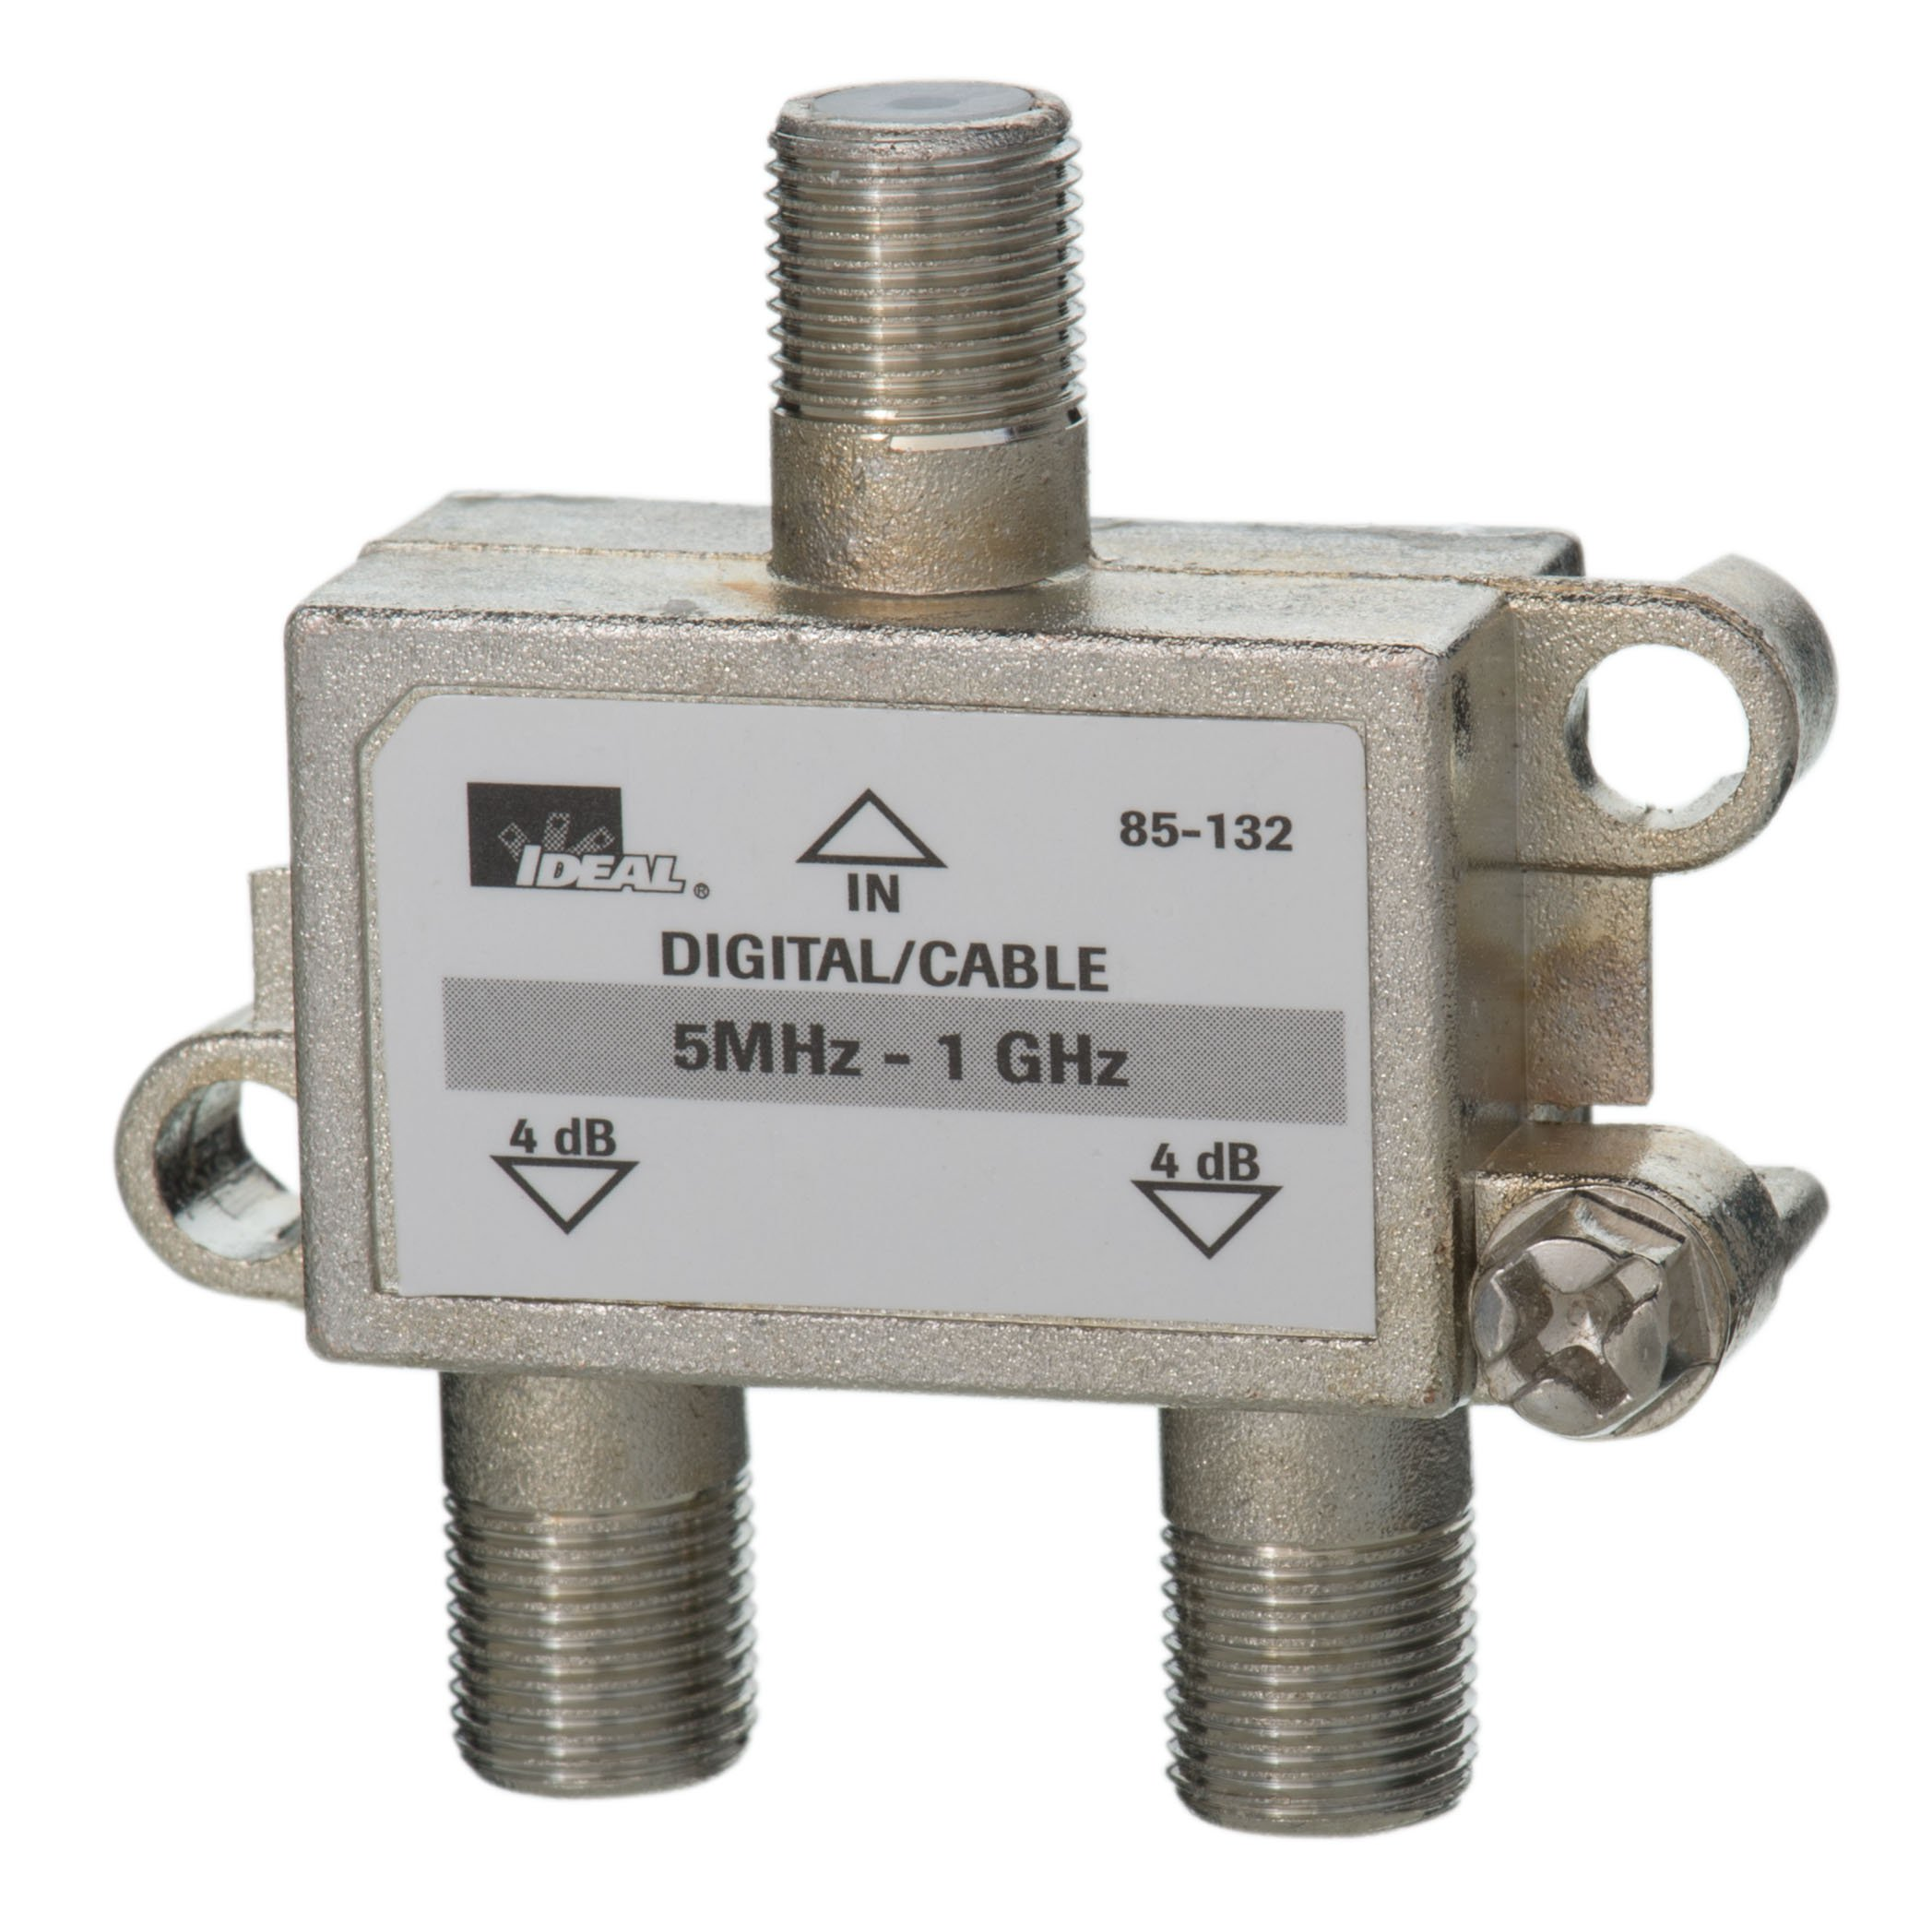 IDEAL®85-132